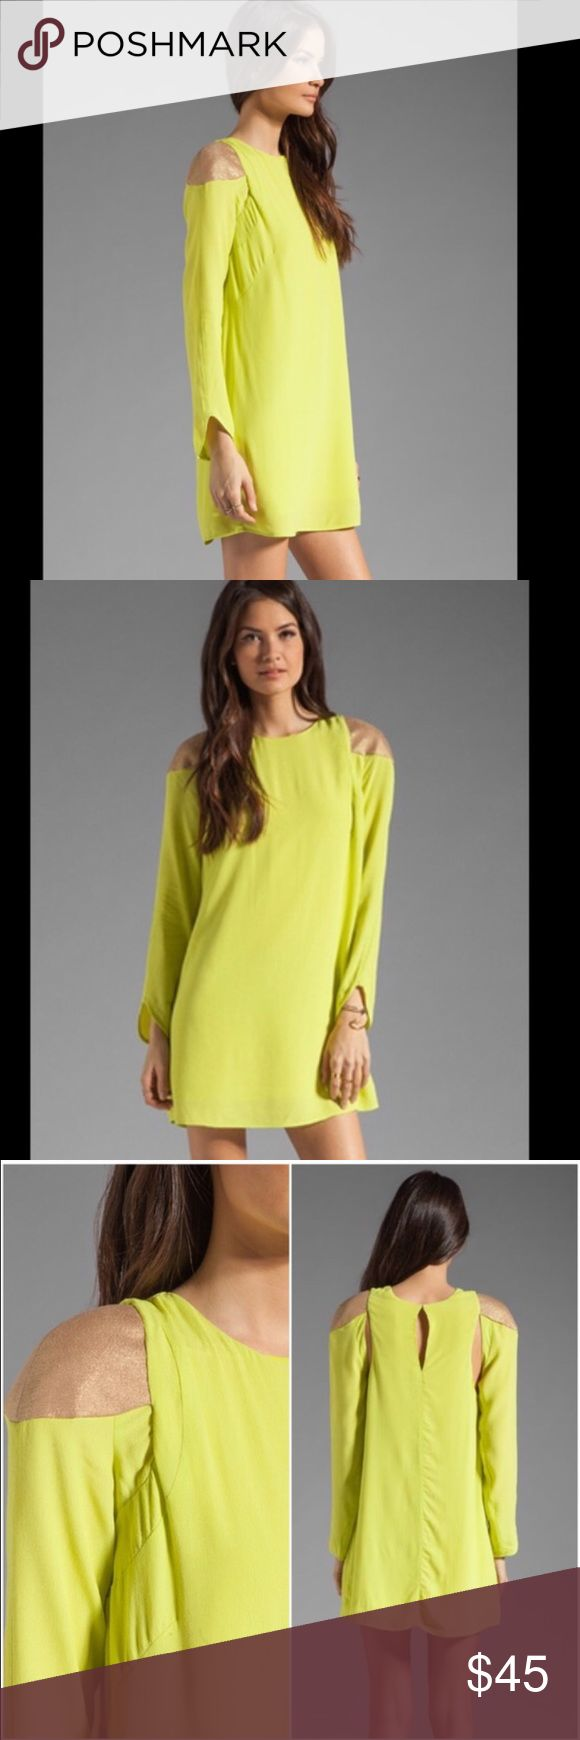 "NWT Finders Keepers Waiting Game Dress in Lime Brand new with tags Finders Keepers ""Waiting Game"" dress in electric lime and gold. Cute cutout back detail. Size medium. ❌Trades/holds❌ I ship within one business day of your order.  Poshmark rules only. Thank you for looking! 🚭🐩 B1 Finders Keepers Dresses Mini"